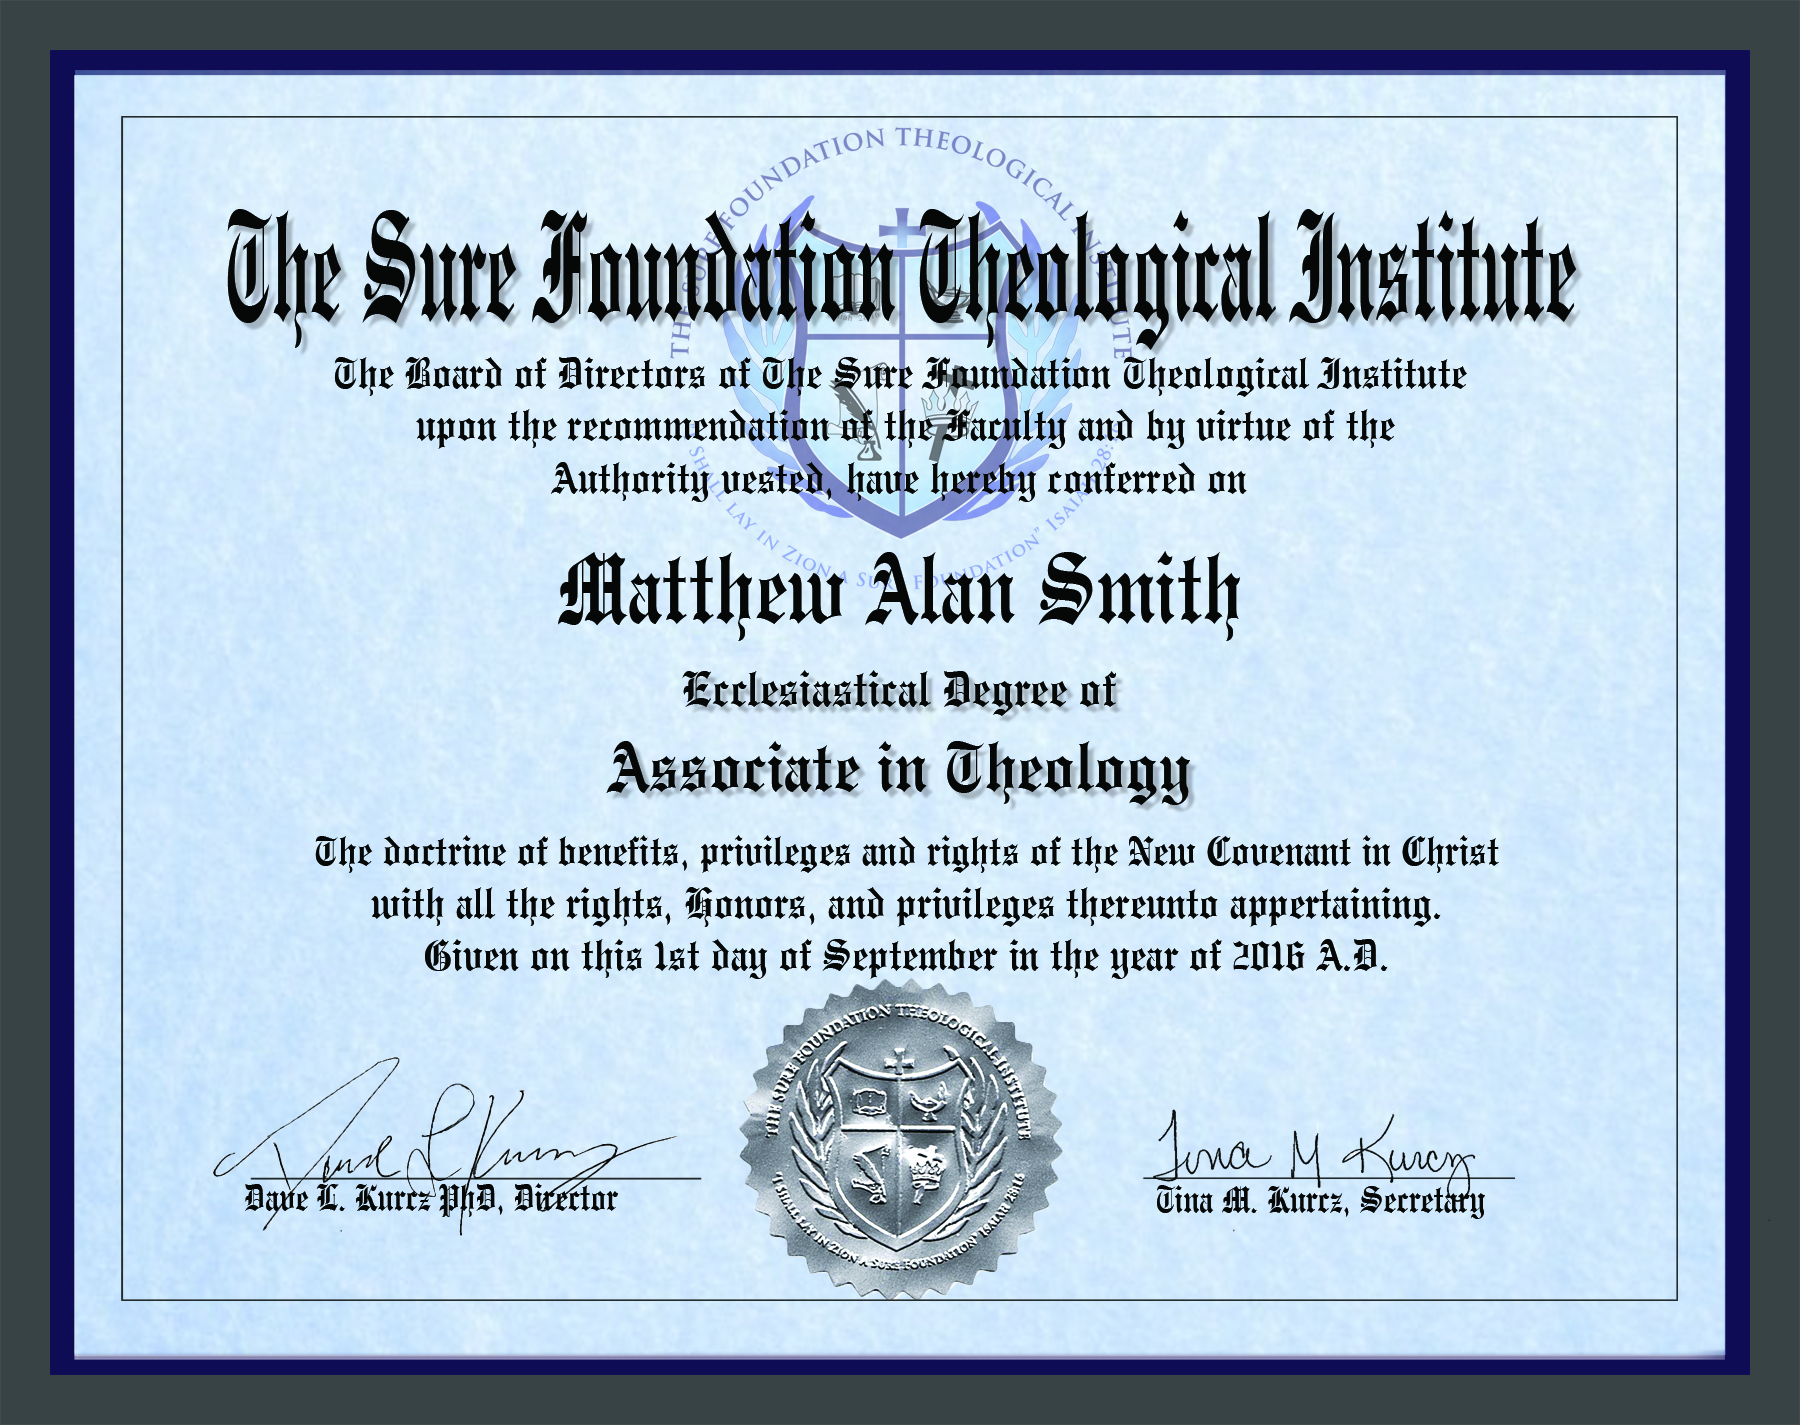 Associate Degree in Theology